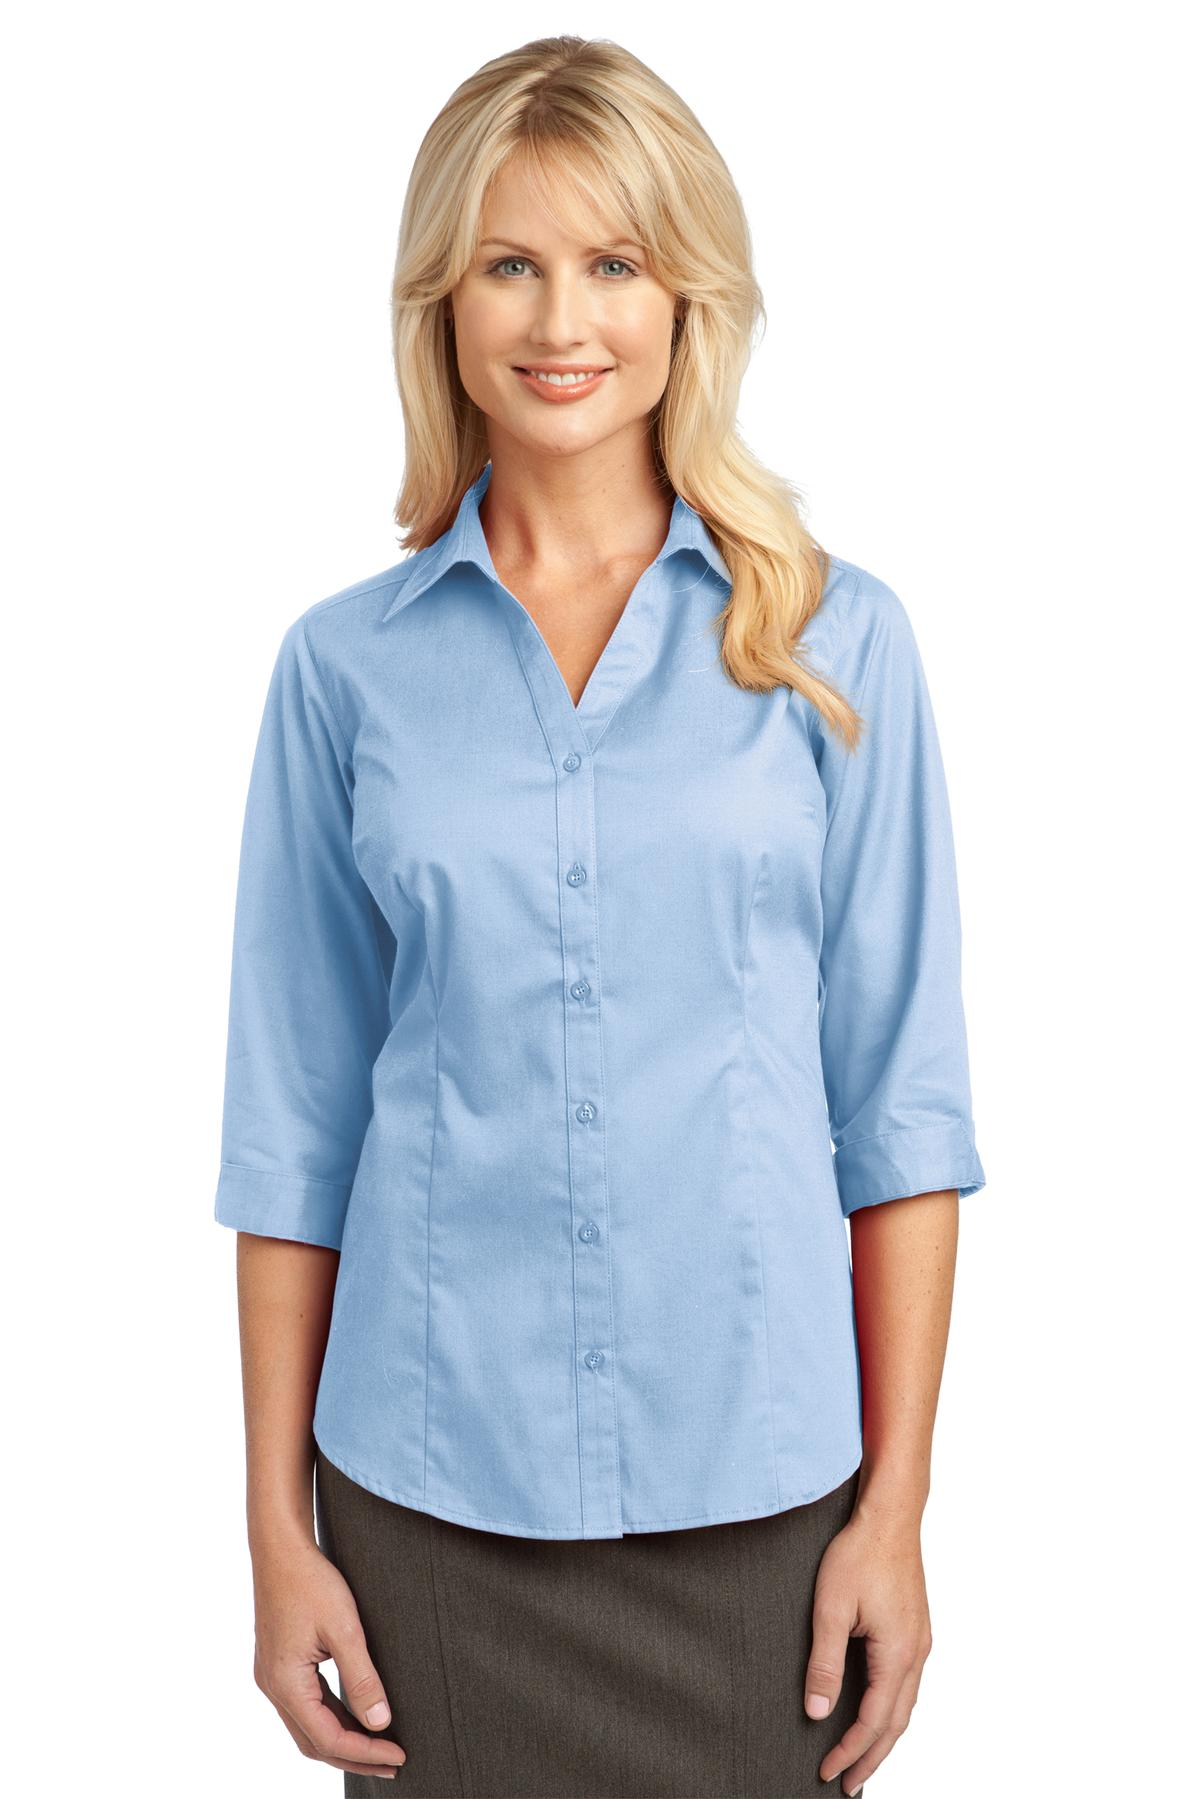 Aquamarine Port Authority Ladies Dry Zone® UV Micro-Mesh Polo.